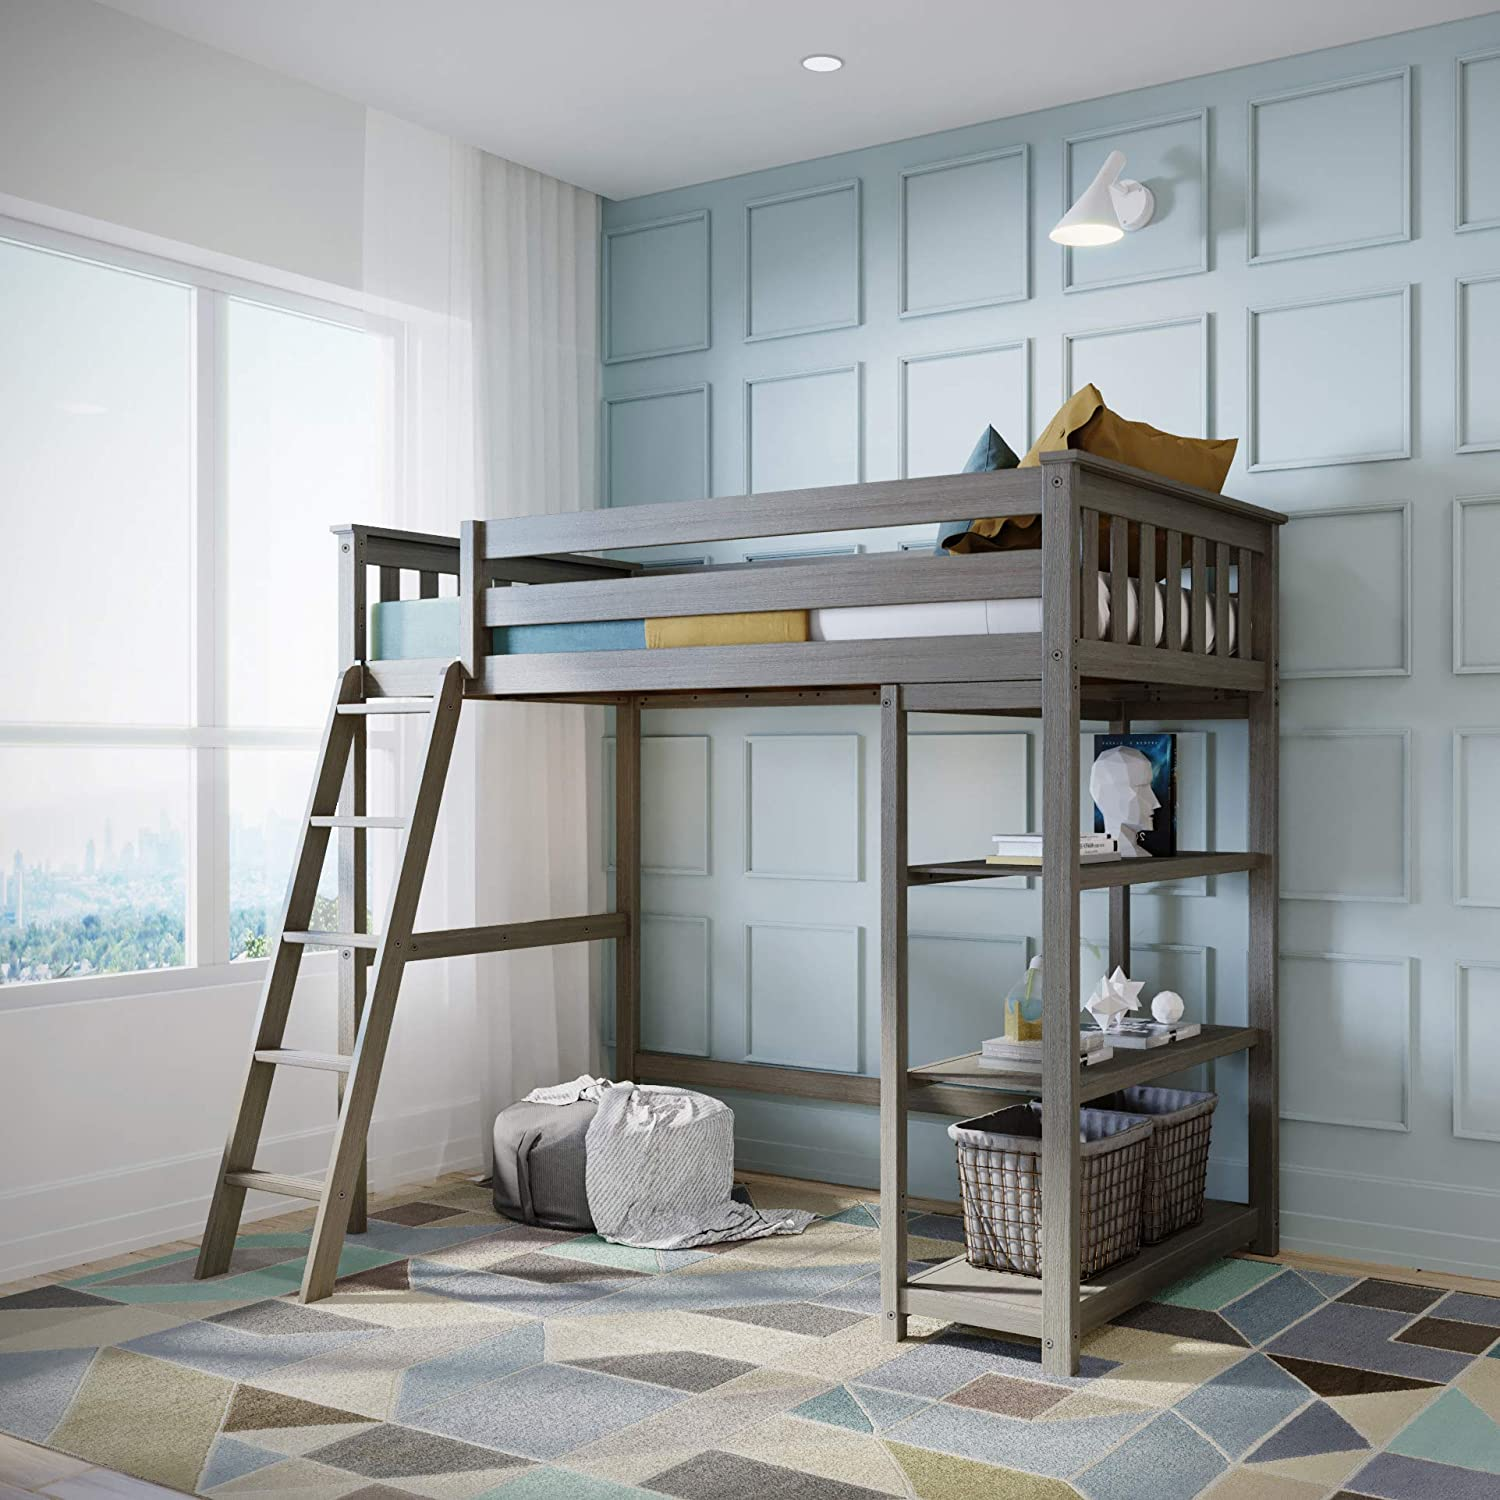 Max & Lily Solid Wood Twin-Size High Loft Bed with Bookcase, Clay